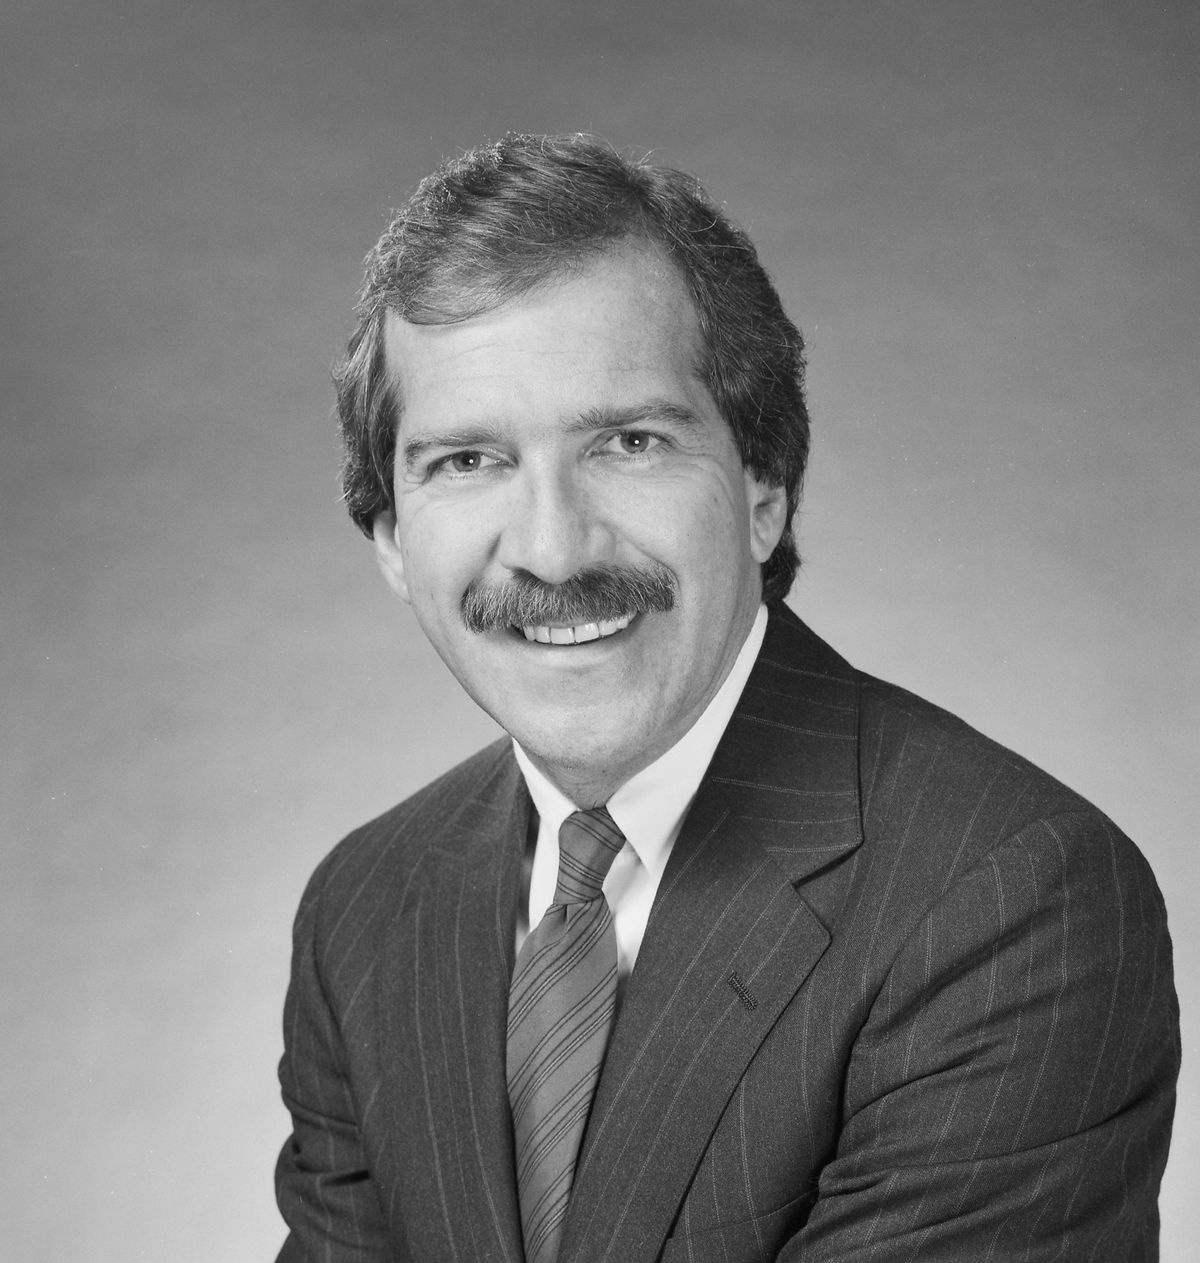 Pat O'Brien in 1985, while he was with CBS Sports (GettyImages)